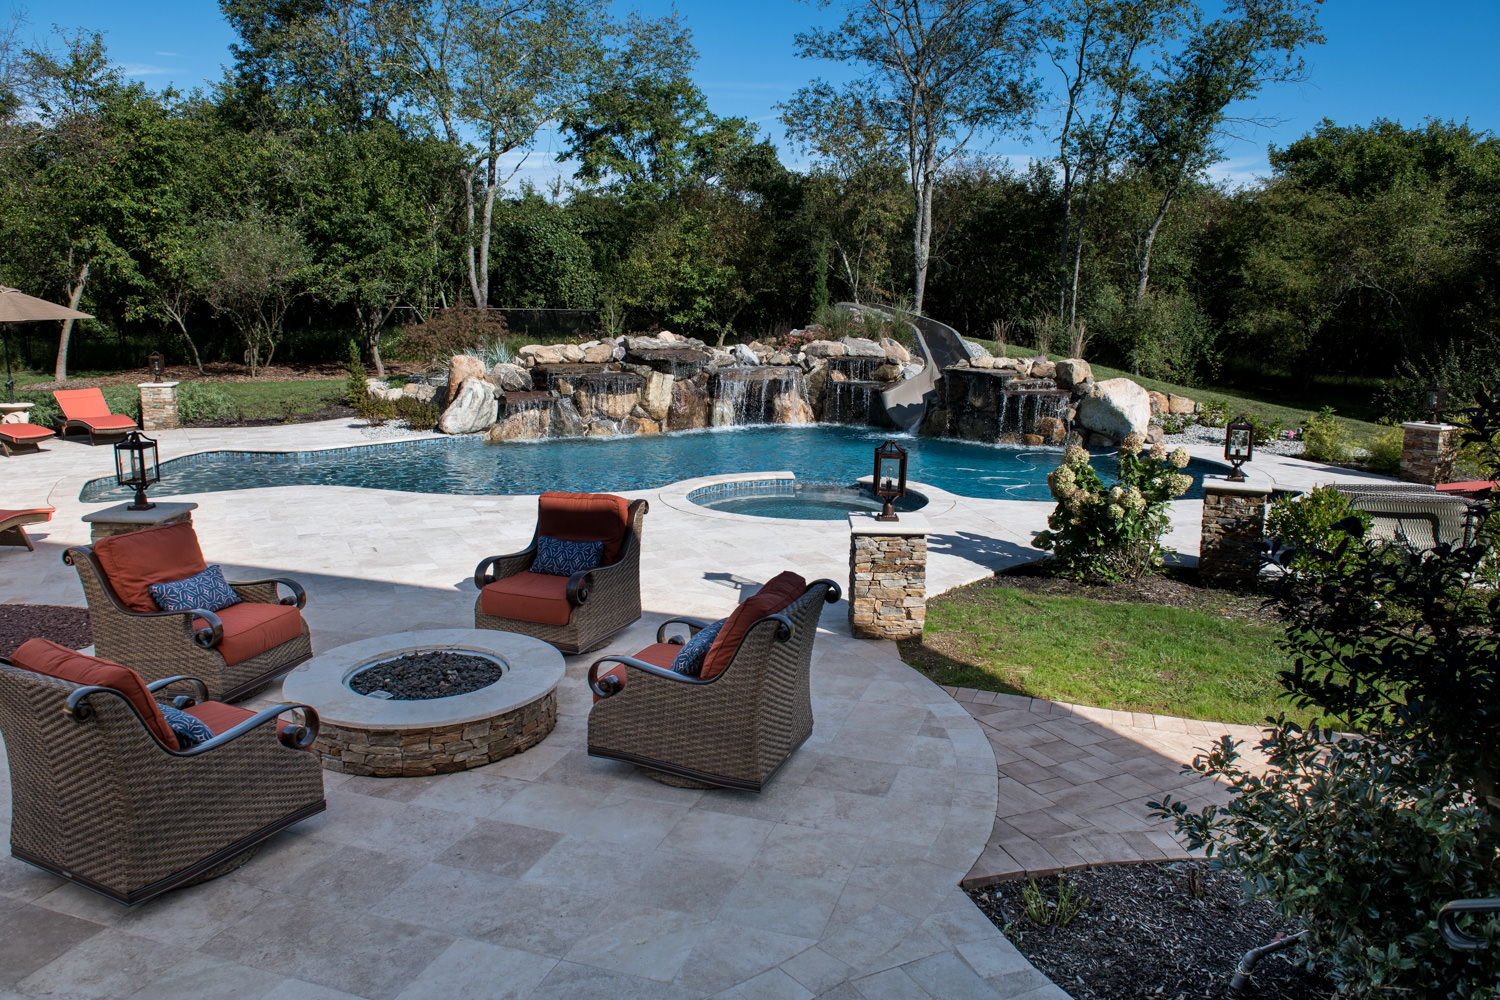 10-Custom-Pool-Design-Pennington-NJ-K-and-C-Land-Design.jpg